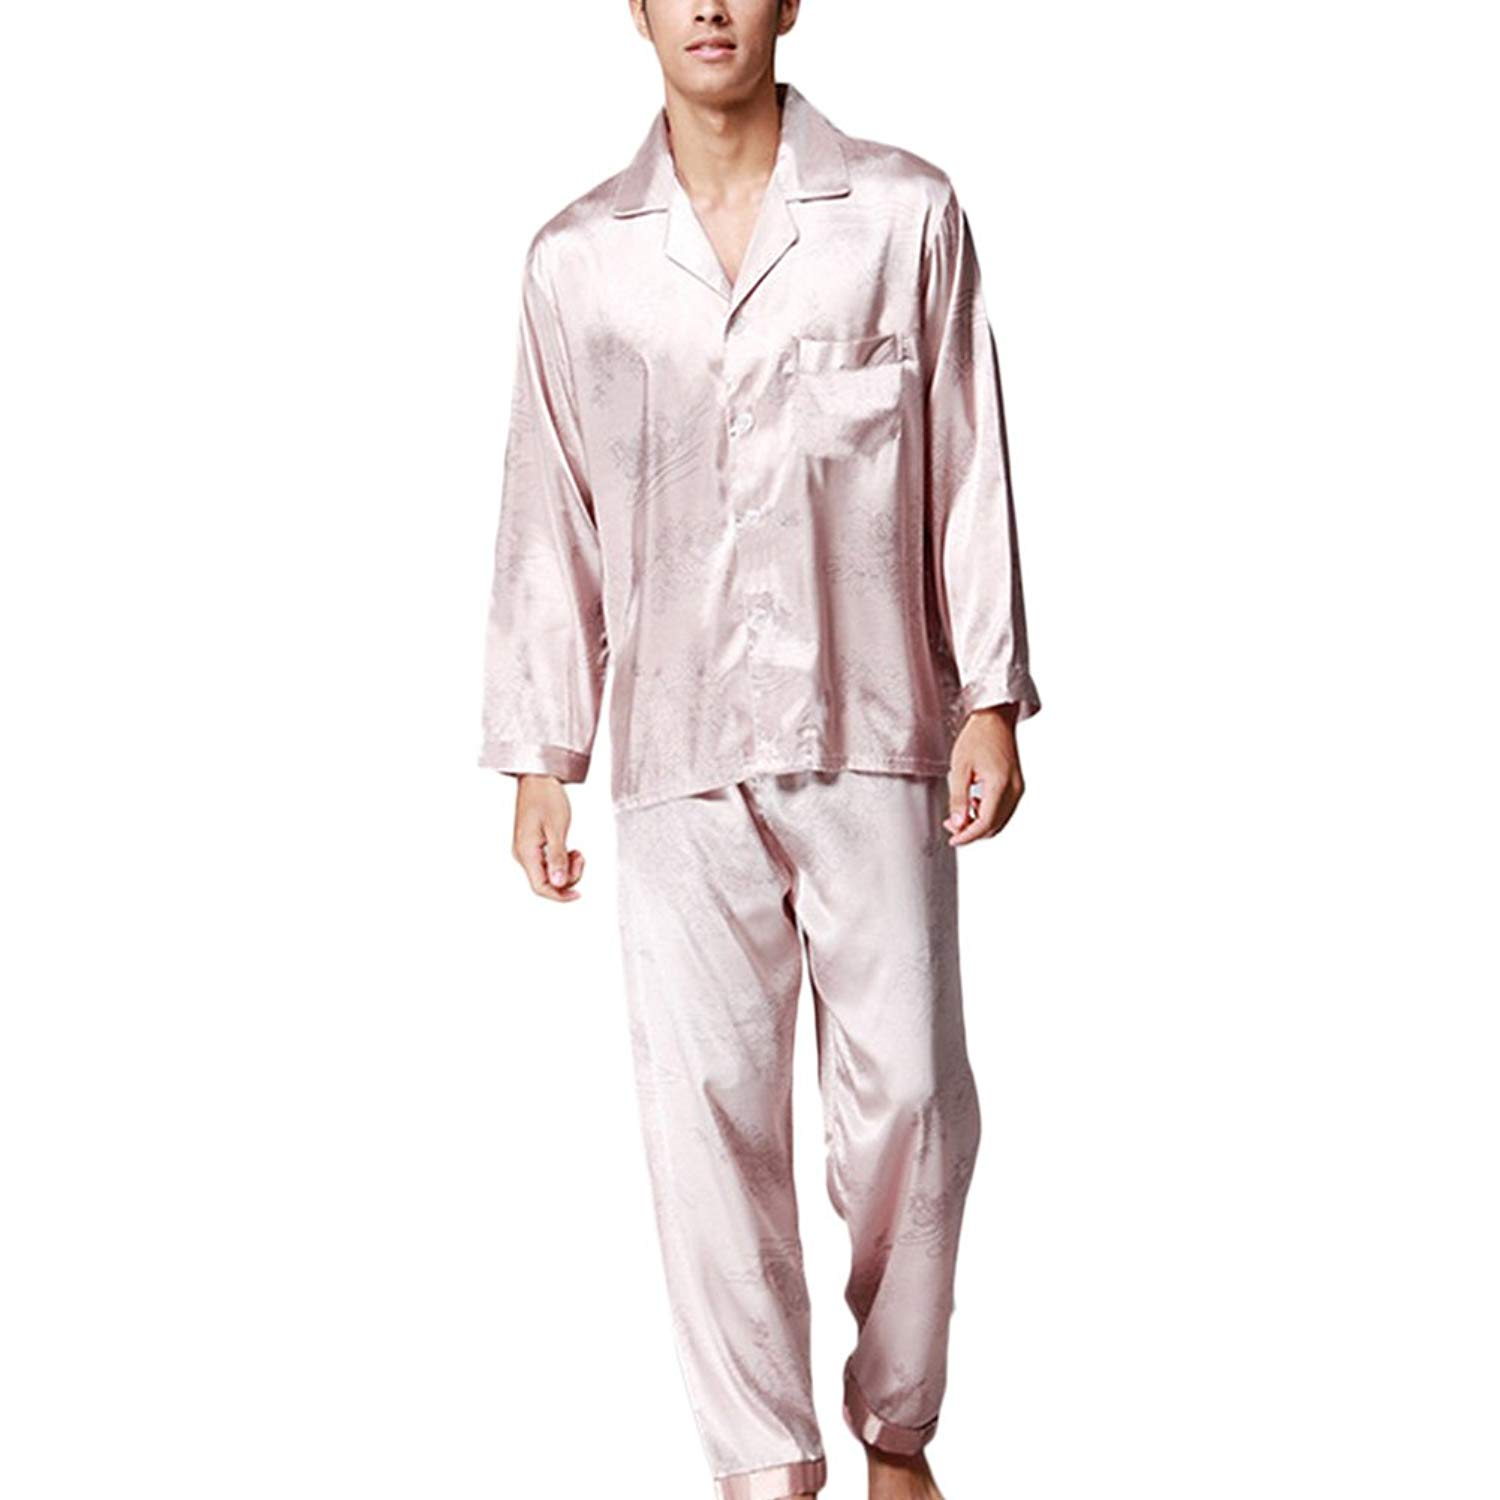 c590b4d9e4 Get Quotations · Zhhlinyuan Two Pieces Home Clothing Nightwear Mens Long  Sleeve Silk Pyjama Set